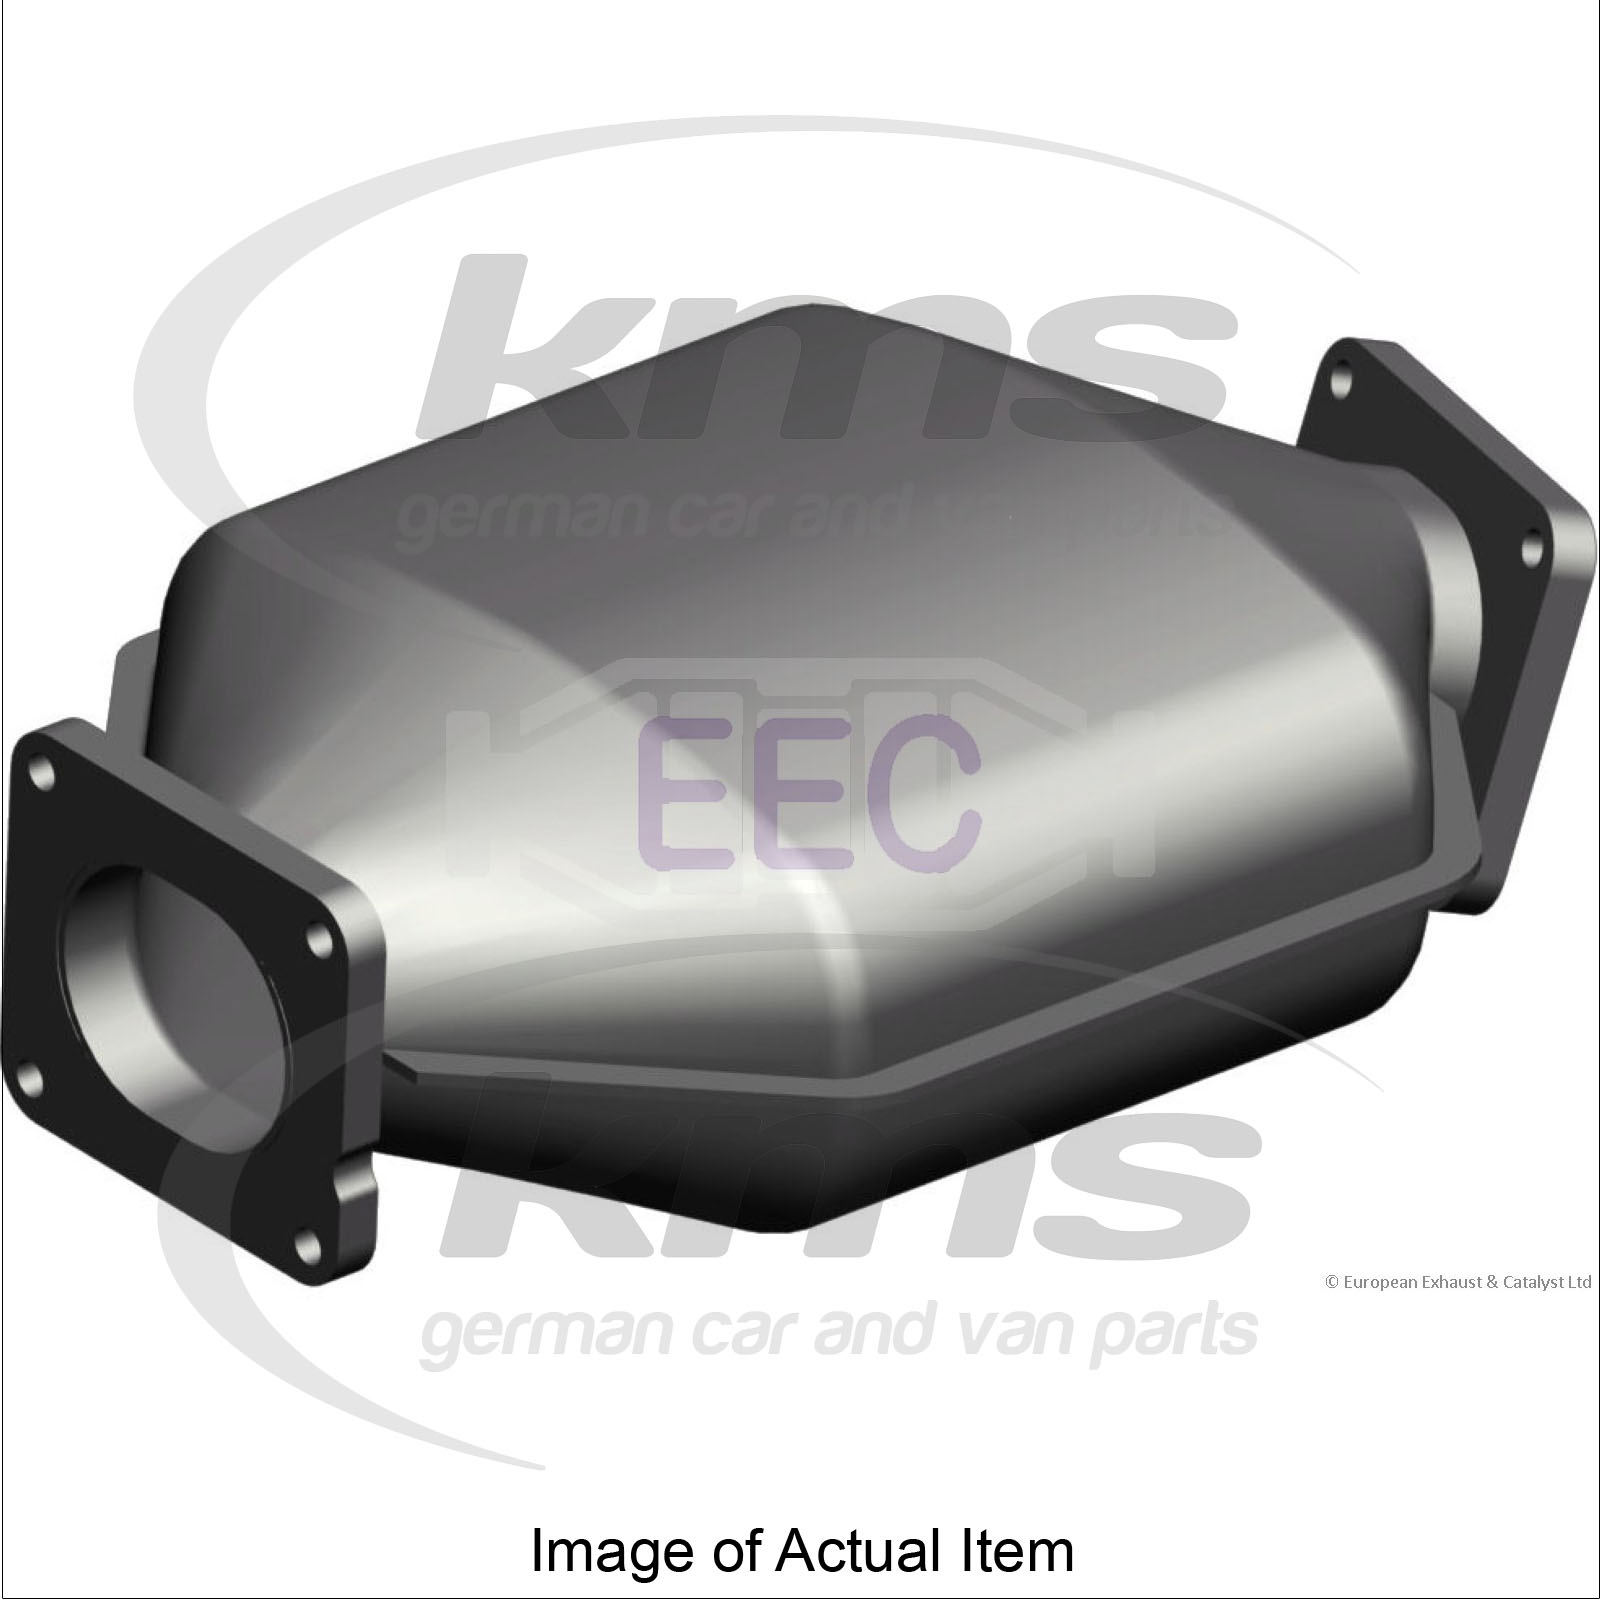 diesel particulate filter dpf fap bmw 520 e61 2 0 d diesel 09 2005 09 2007 e ebay. Black Bedroom Furniture Sets. Home Design Ideas